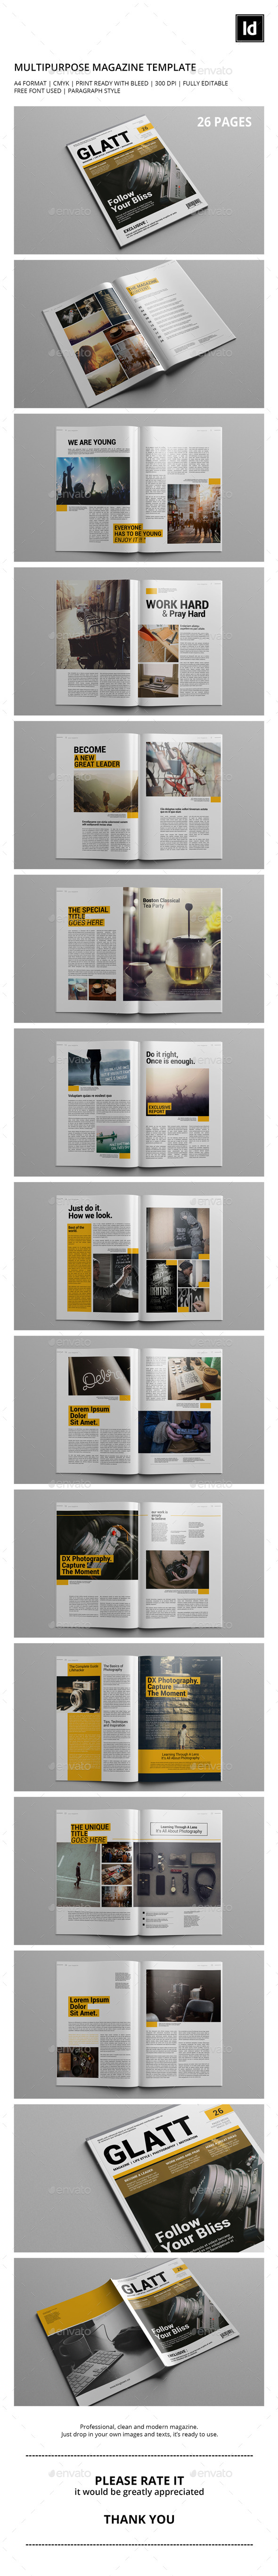 GraphicRiver GLATT Multipurpose Magazine Template 11463247